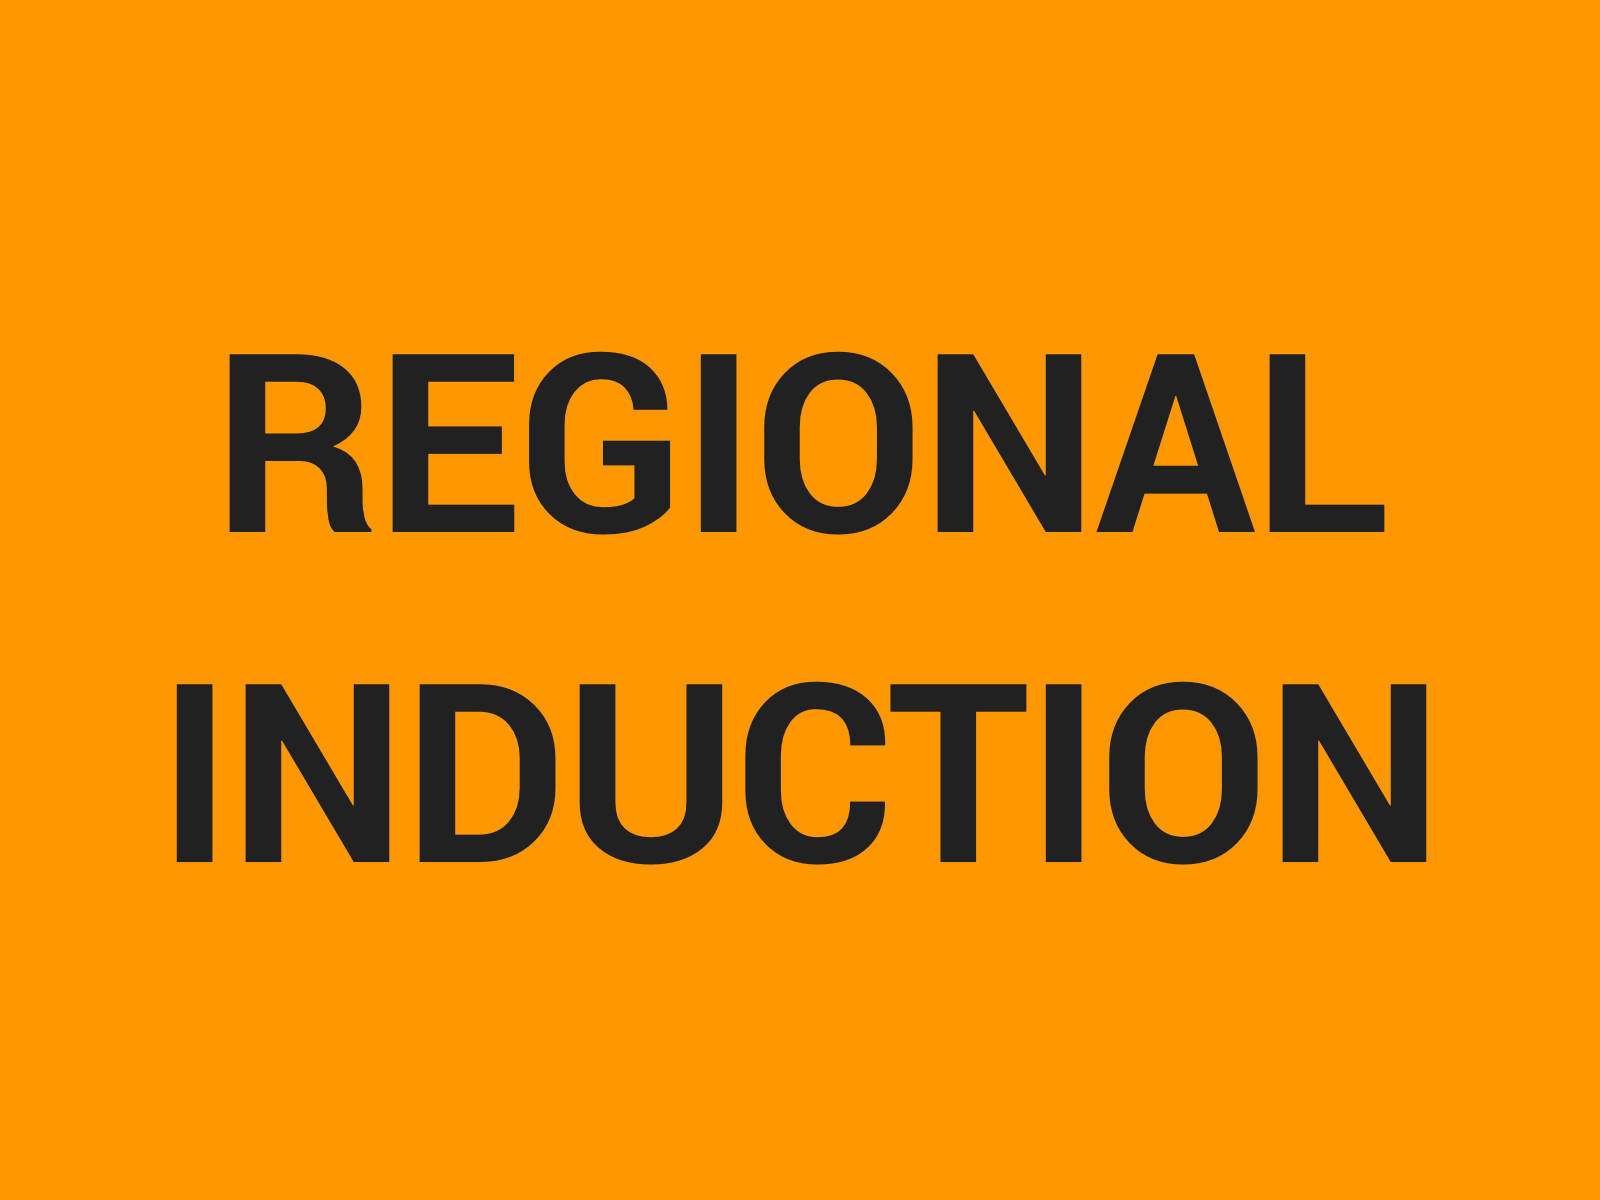 HST - Regional Induction (card).png